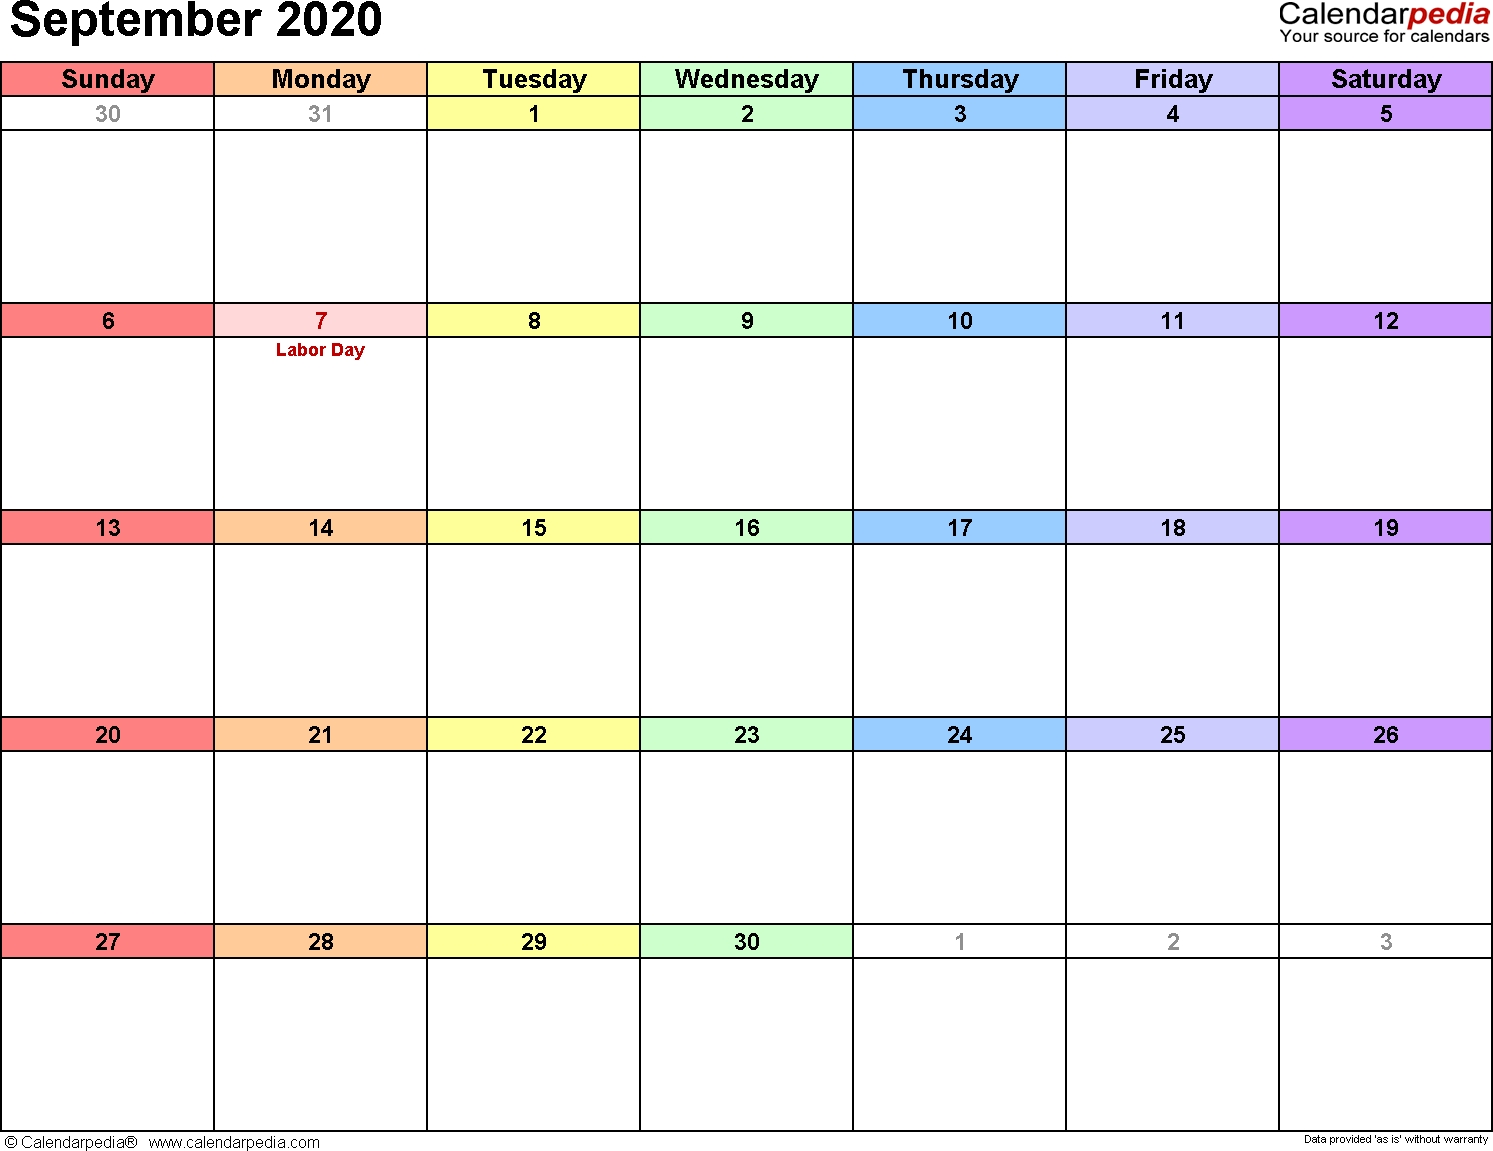 September 2020 Calendars For Word, Excel & Pdf  Full Page September 2020 Calender Page